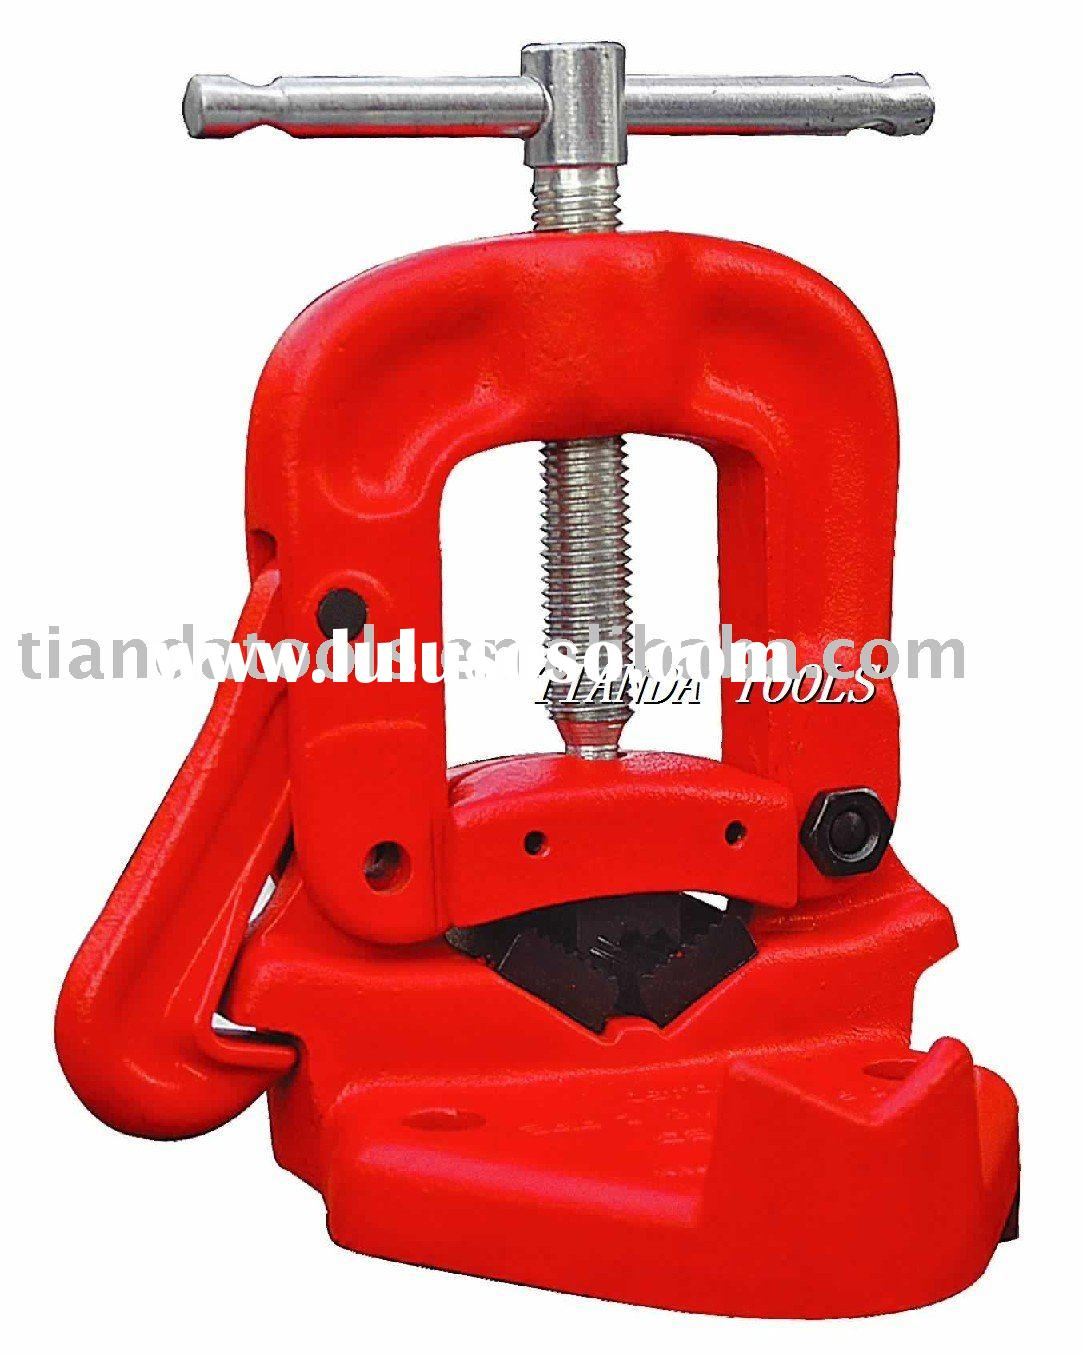 pipe vise, bench yoke vise,high quality with low price